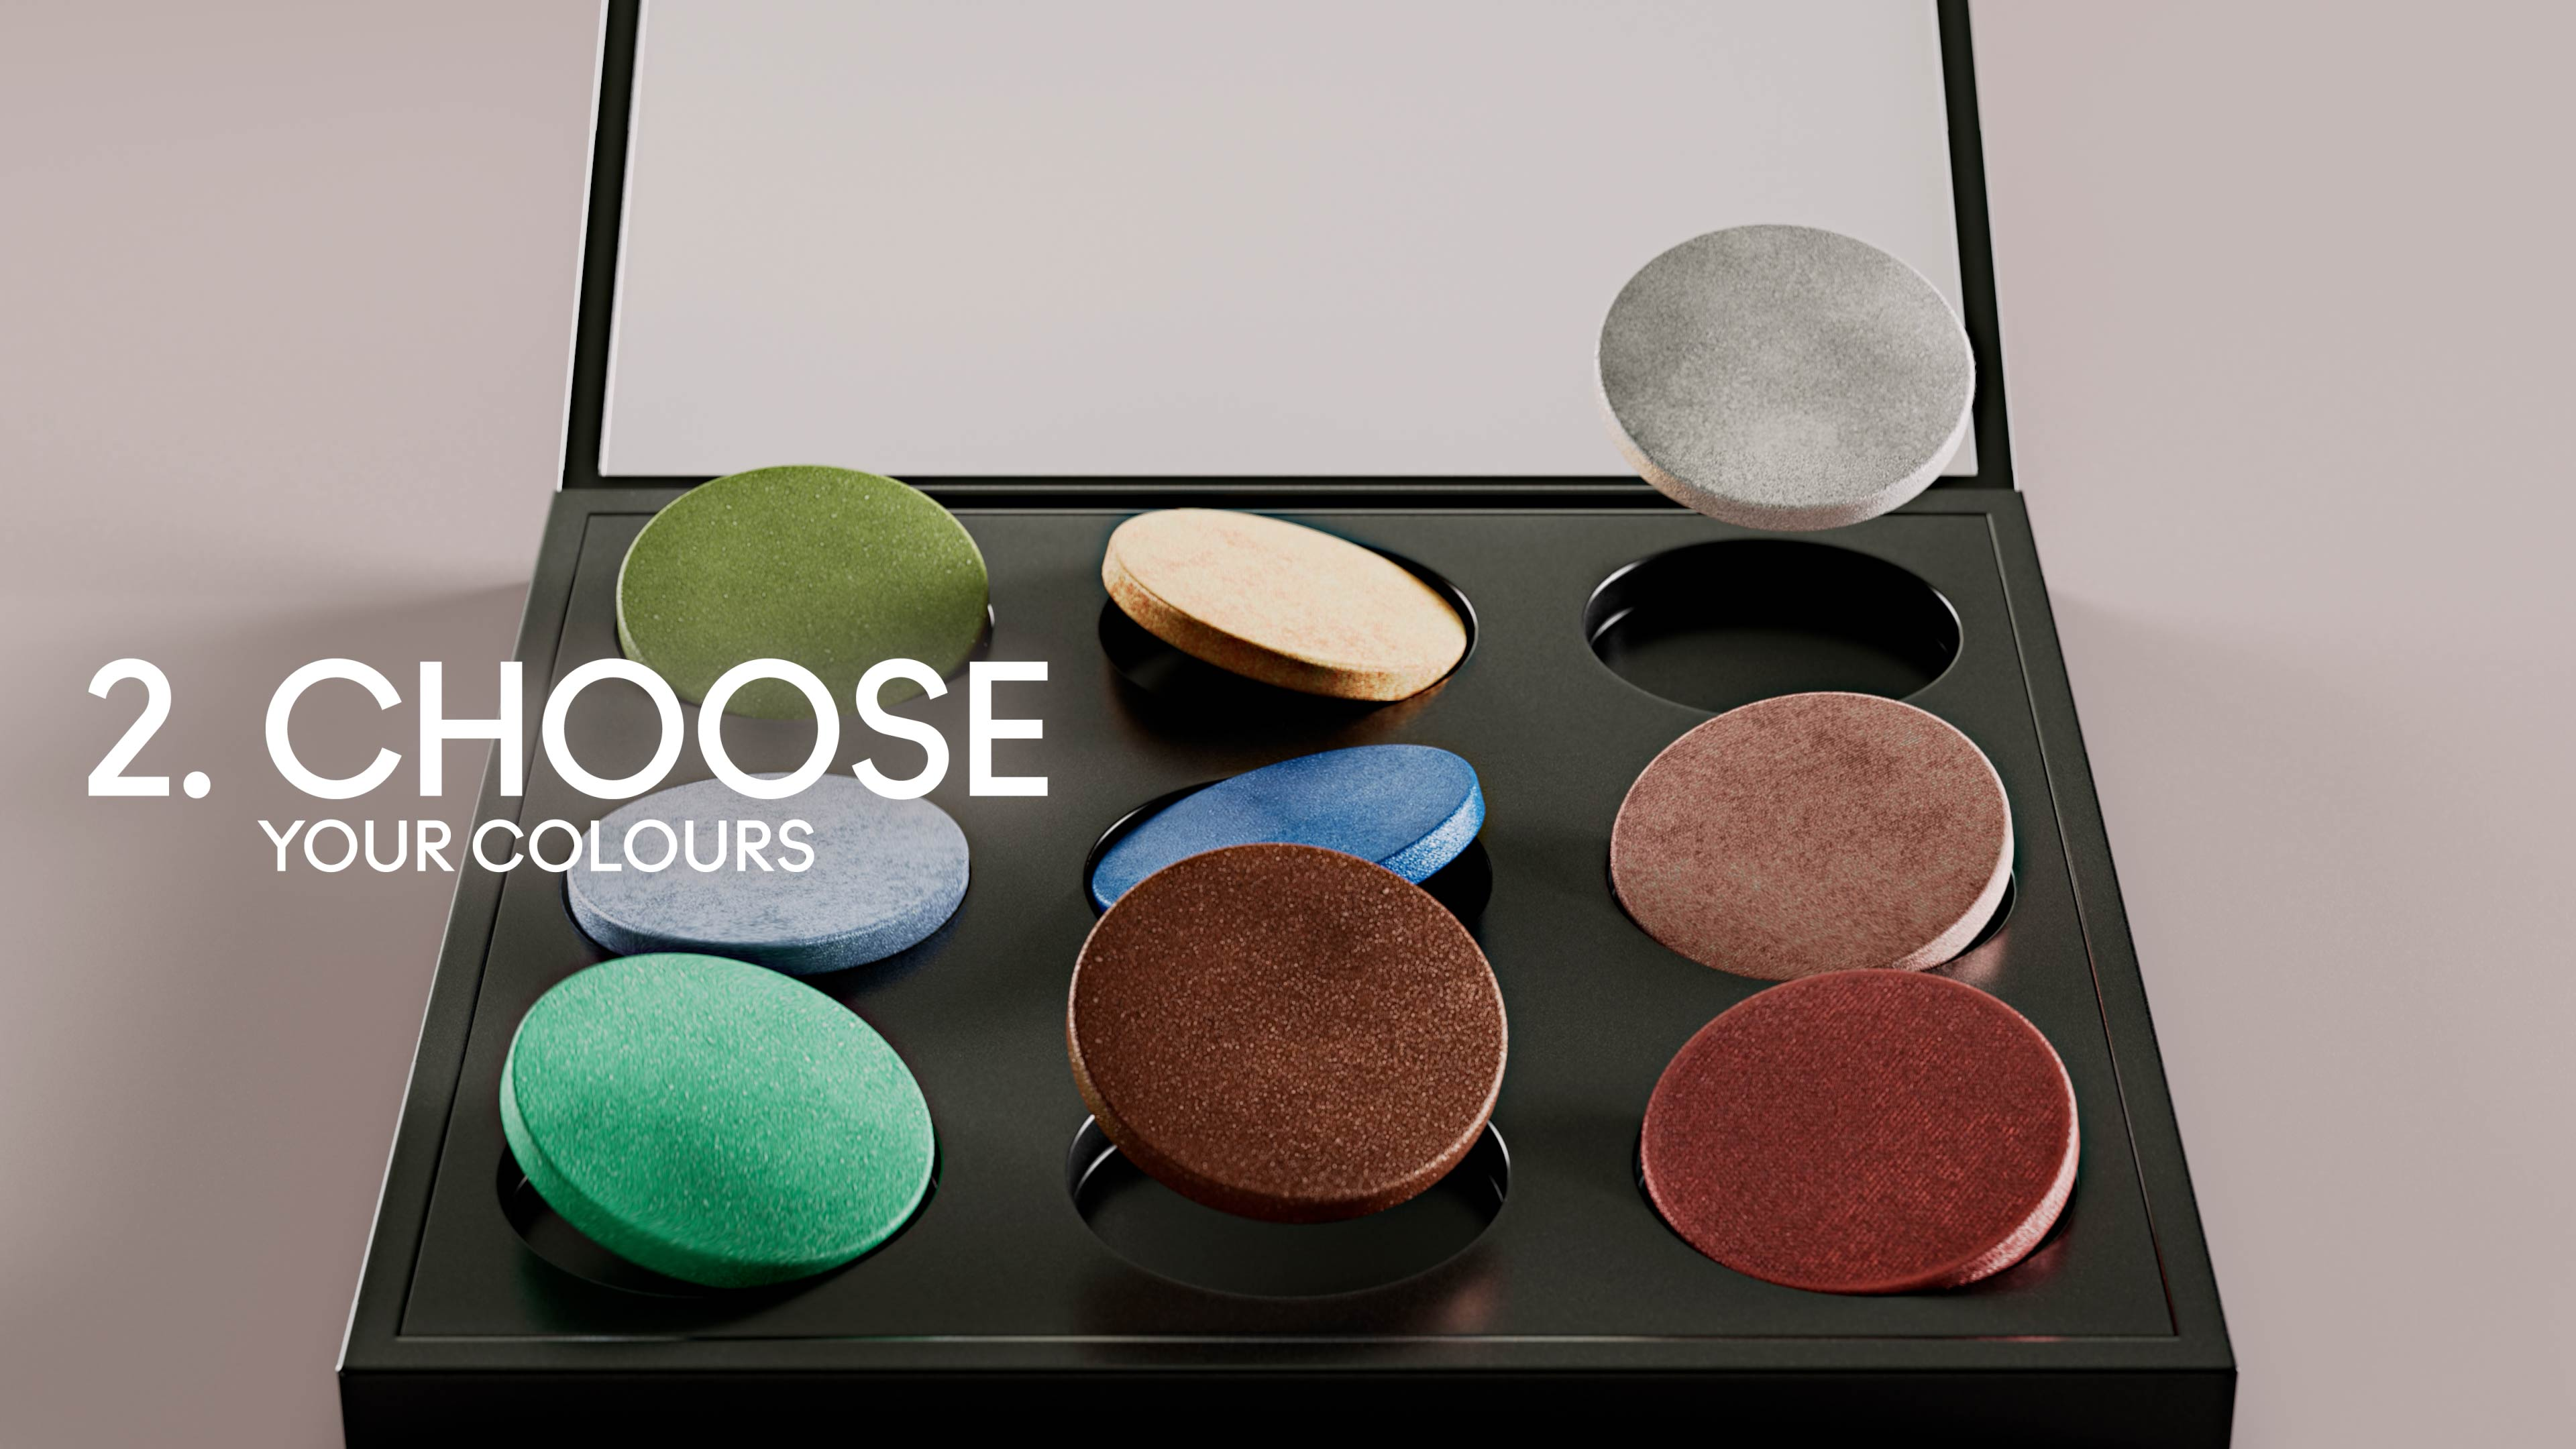 3D animation of colored cosmetic powders falling in a MAC palette